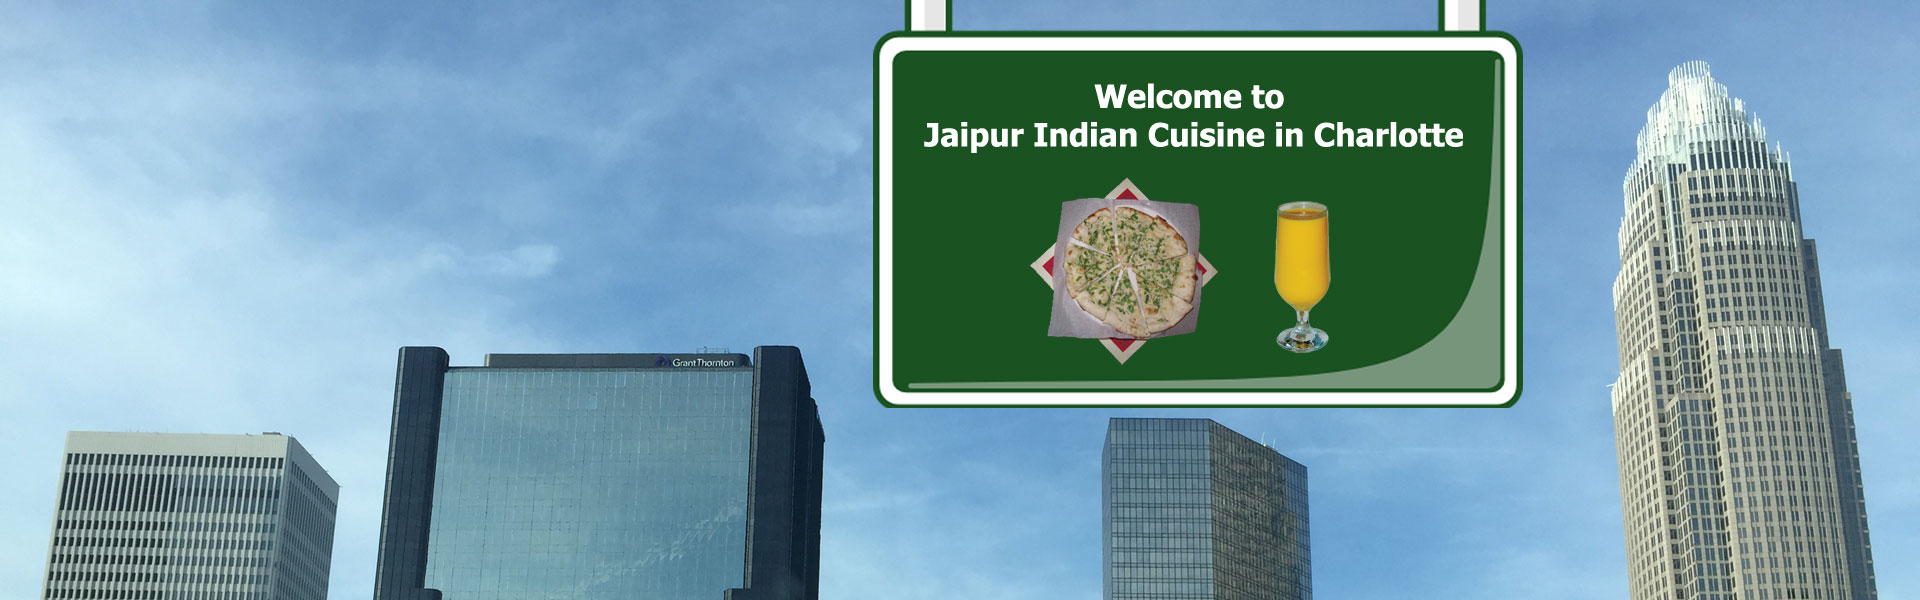 Welcome to jaipur charlotte Indian Restaurant